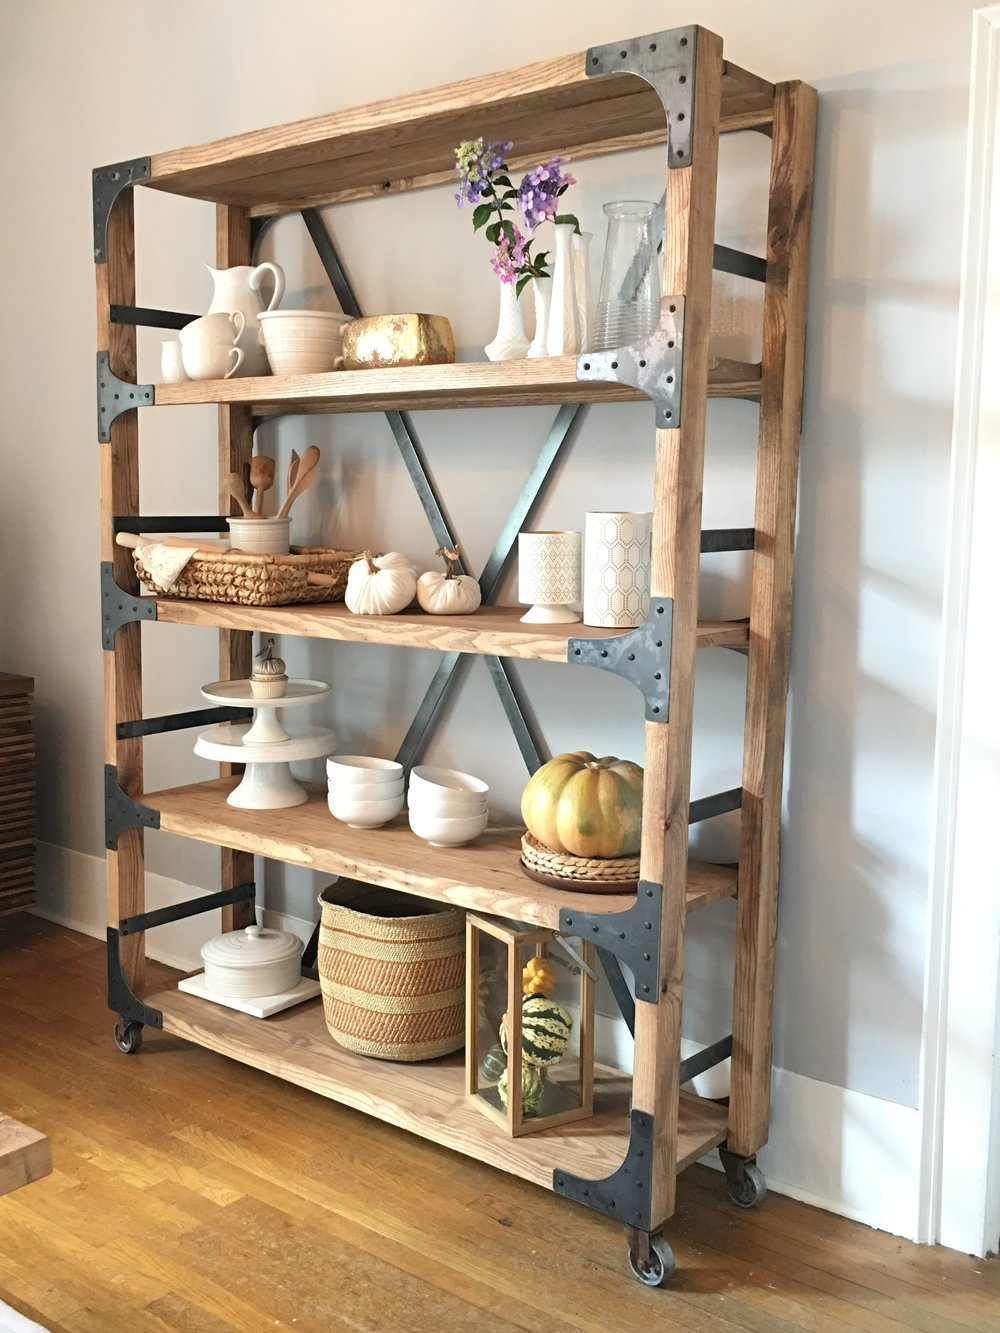 Our   White Shanty Design   shelf is ready for its Fall closeup!! Gah, I love this shelf so much!! I can't wait for you all to see much more. Our line with White Shanty will be out October 14th!! It's a dream come true.     I mean it's going to be amazing!! They gave me a sneak peek of the sliding barn door and it's beyond fabulous. I cannot wait to show y'all everything!! There are several pieces!!  They are incredible to work with and I love how everything is handmade, not to mention they have the sweetest hearts and a beautiful family to match!! ❤️❤️❤️❤️